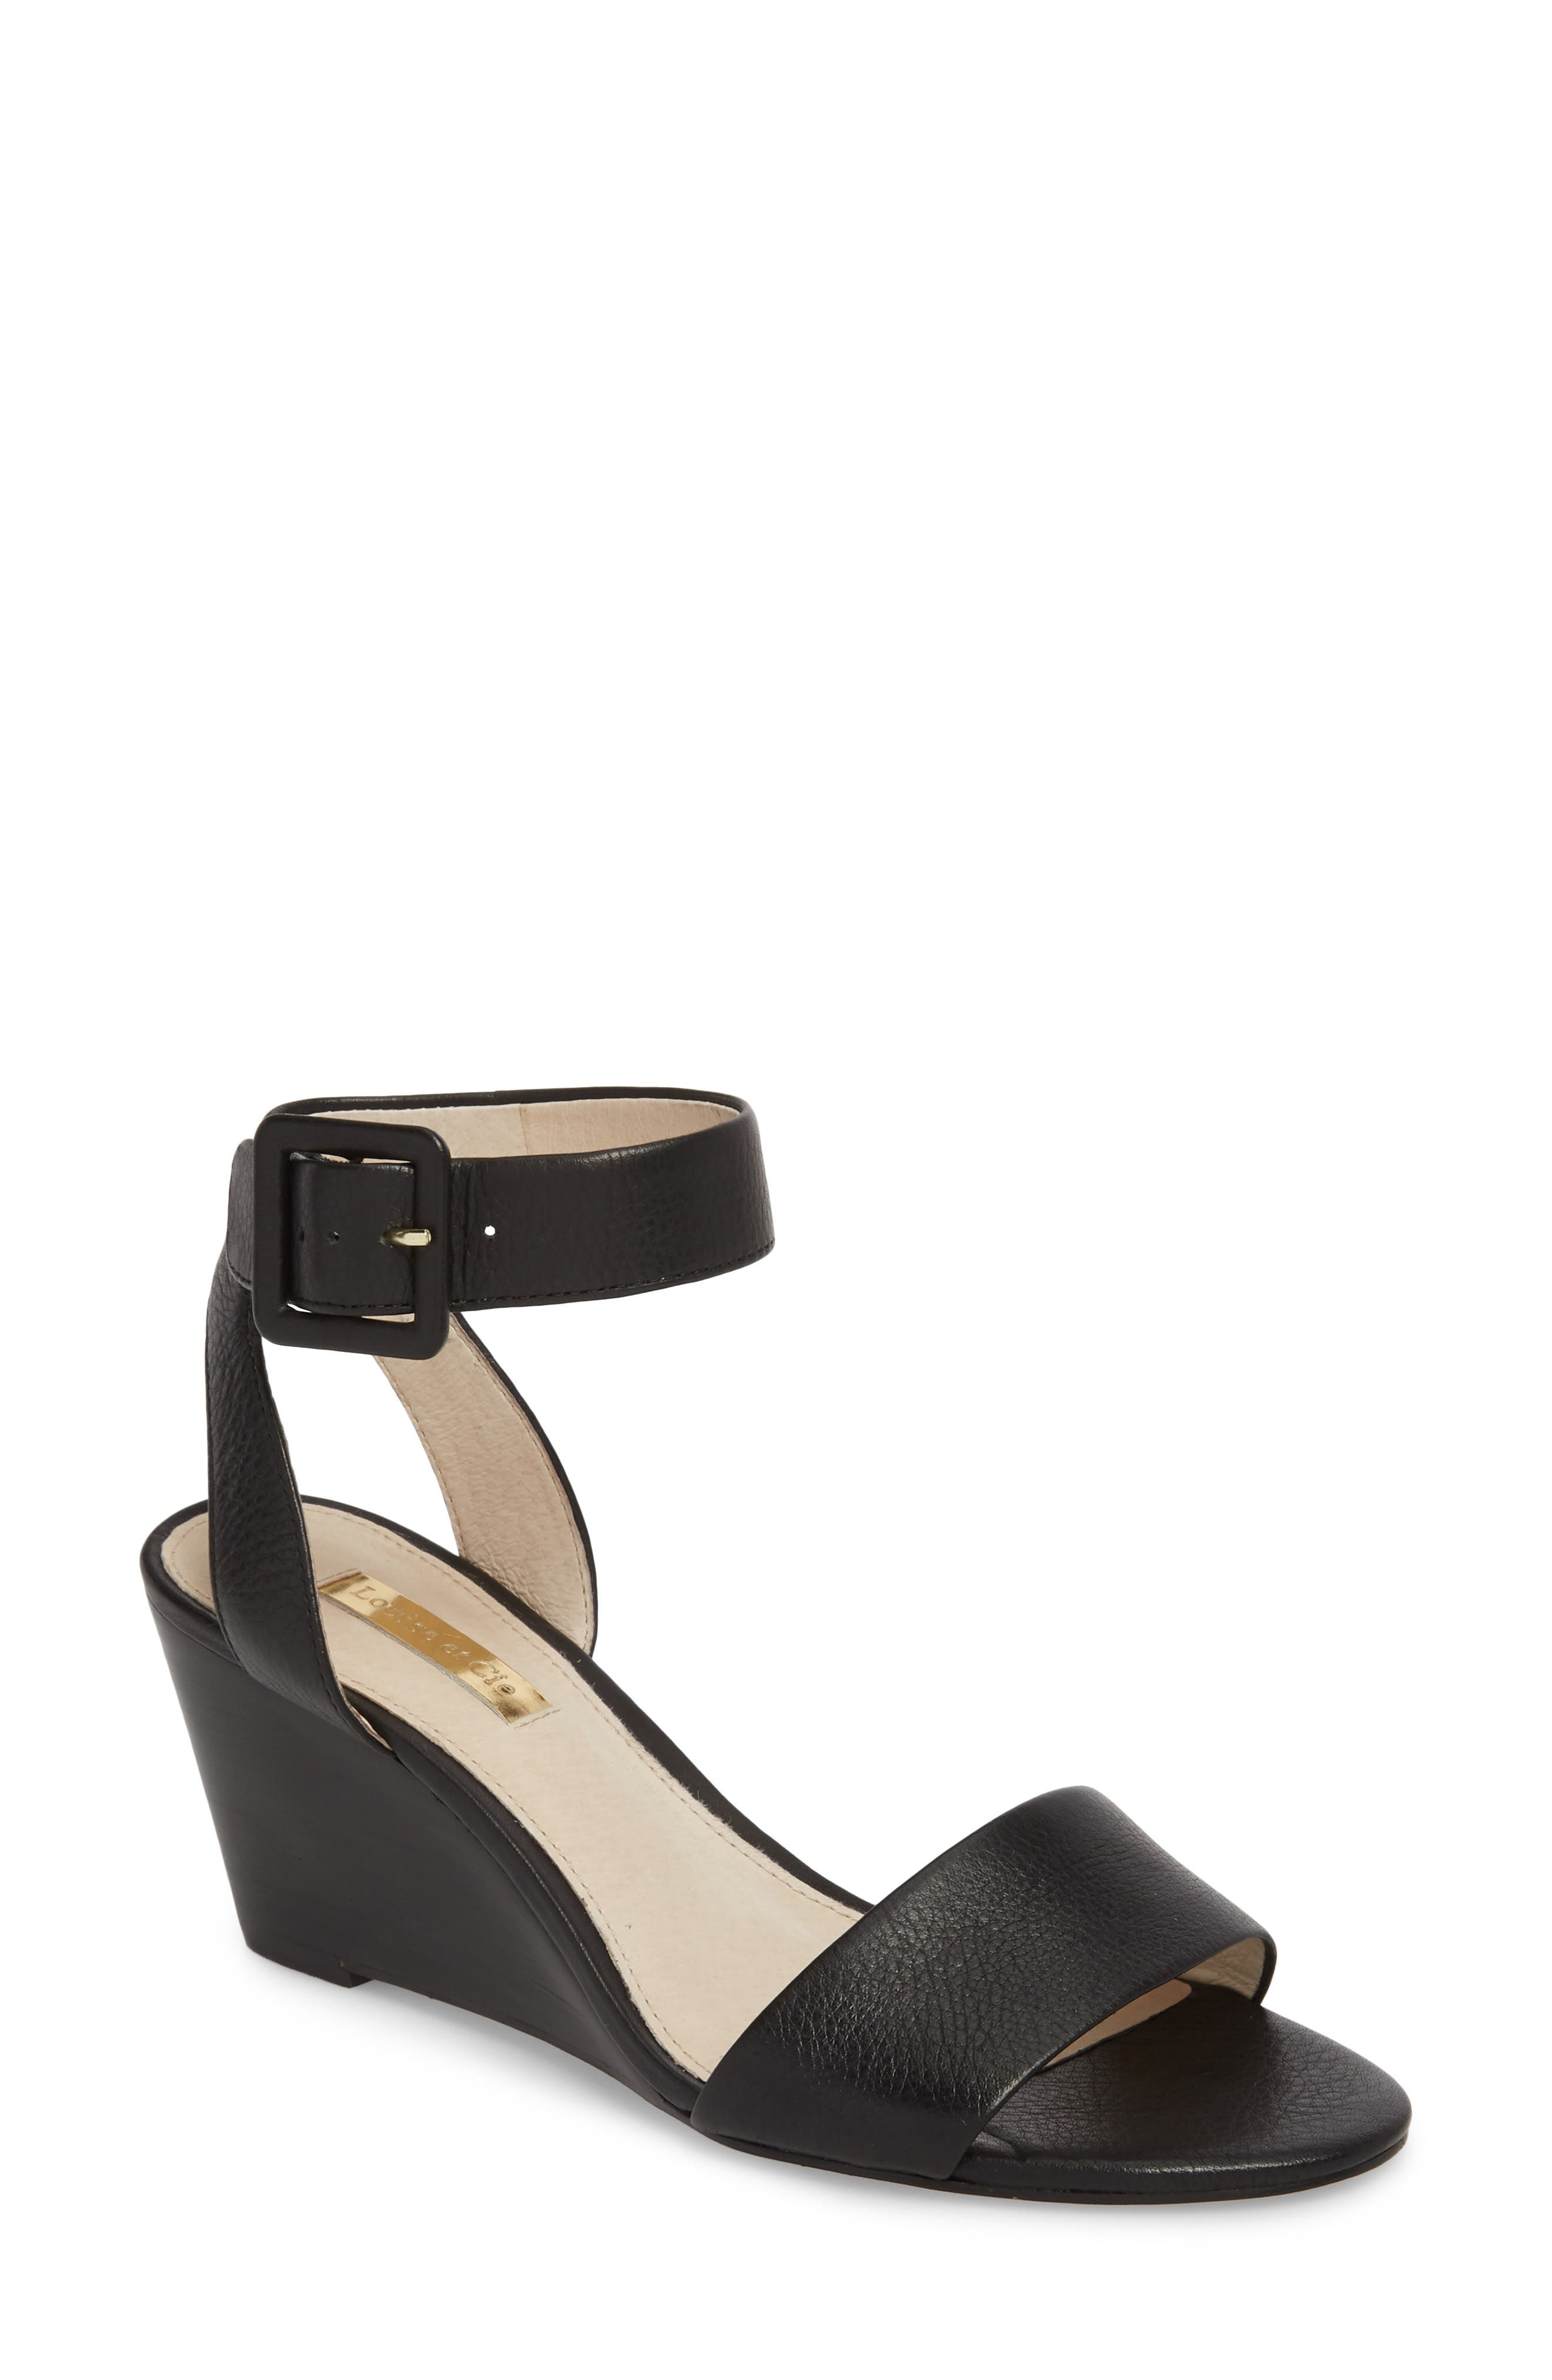 LOUISE ET CIE, Punya Wedge Sandal, Main thumbnail 1, color, BLACK LEATHER